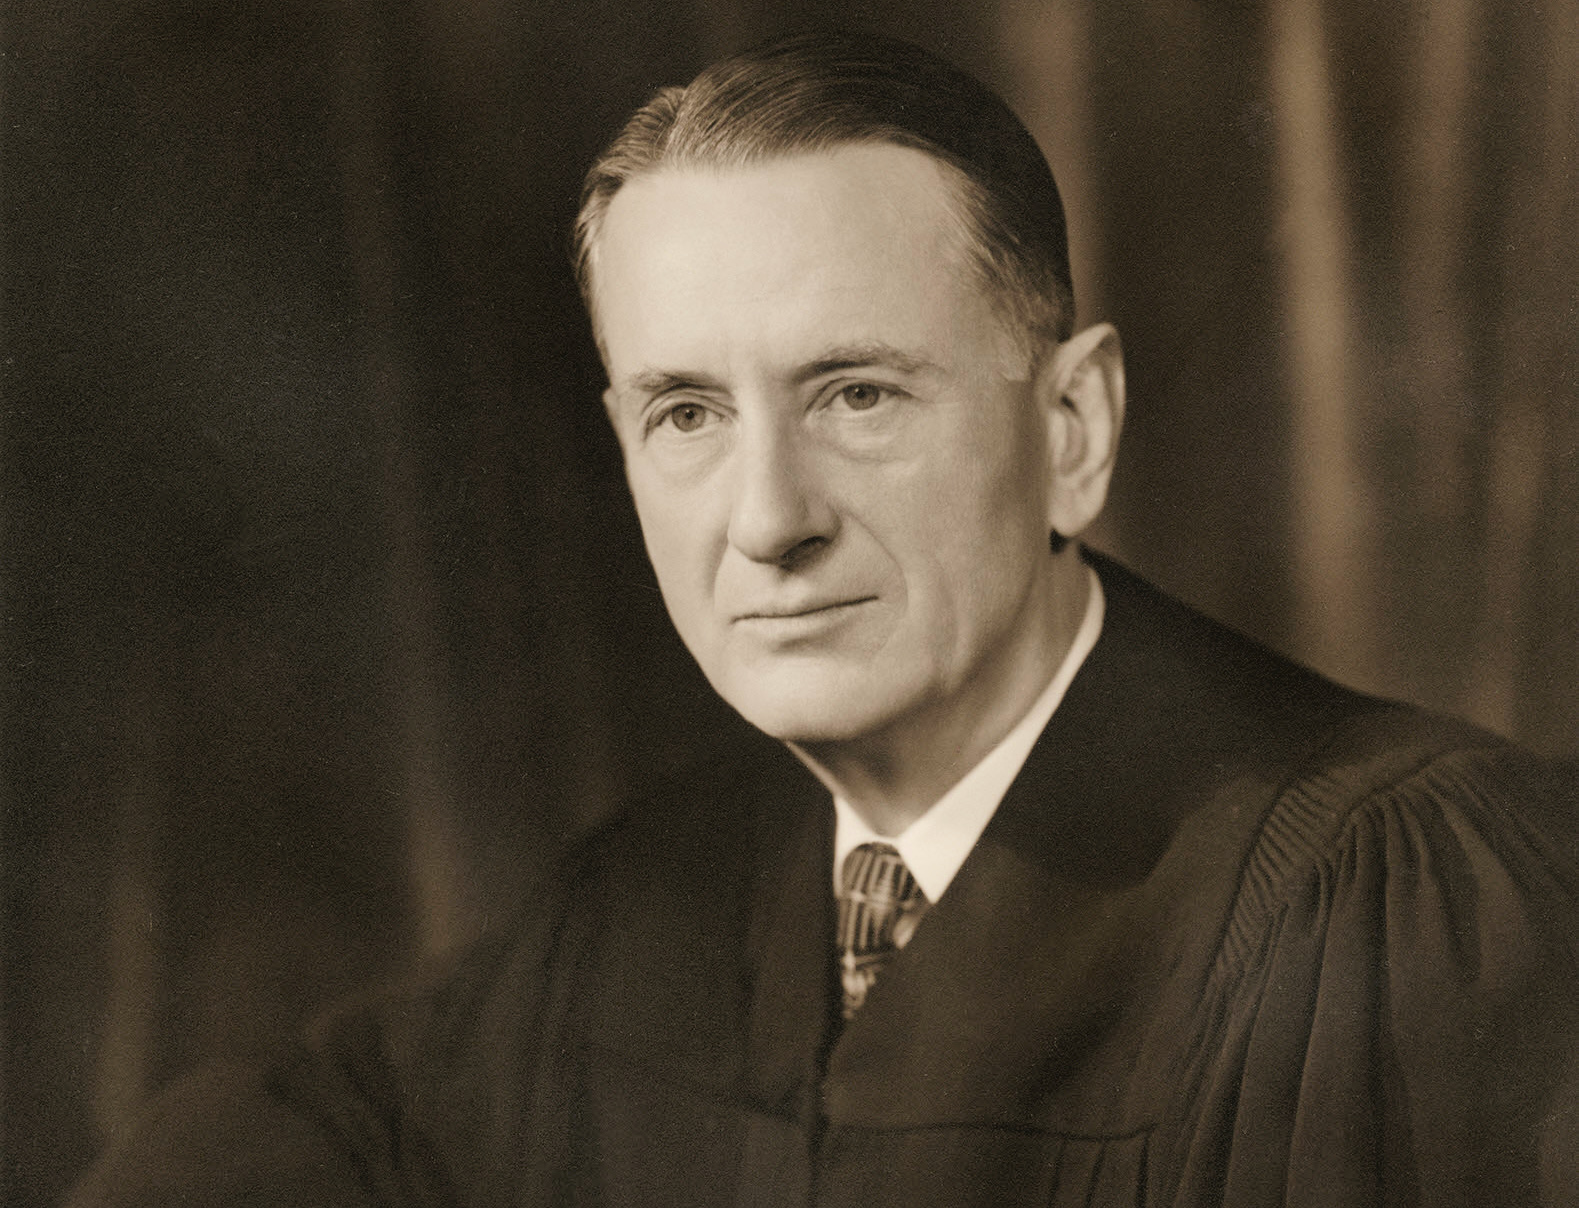 Justice Charles Whitaker in April 1957. (Photograph by Abdon Daoud Ackad, Collection of the Supreme Court of the United States)